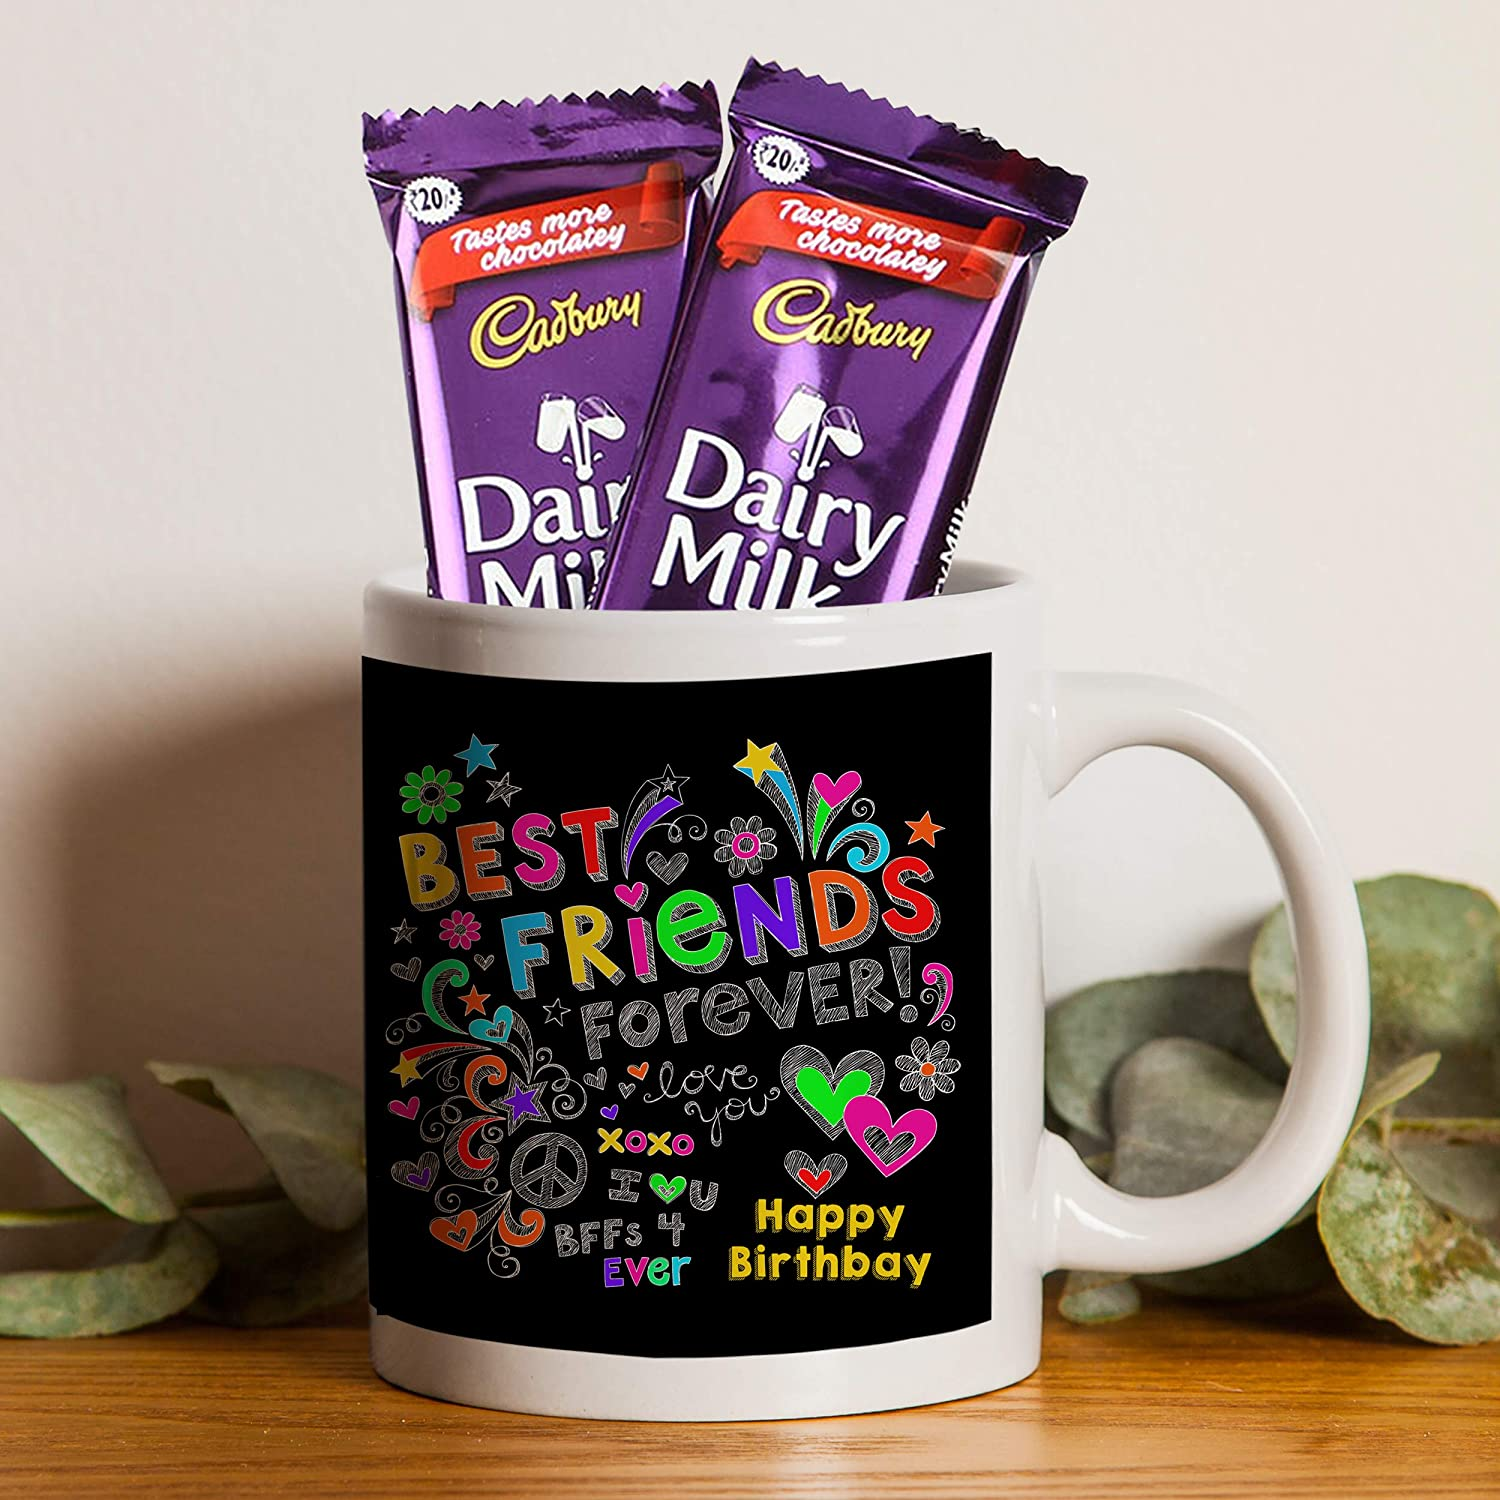 Tied Ribbons Happy Birthday Gift For Friend Boys Girls Dairy Milk Chocolates And Printed Coffee Mug Amazon In Grocery Gourmet Foods